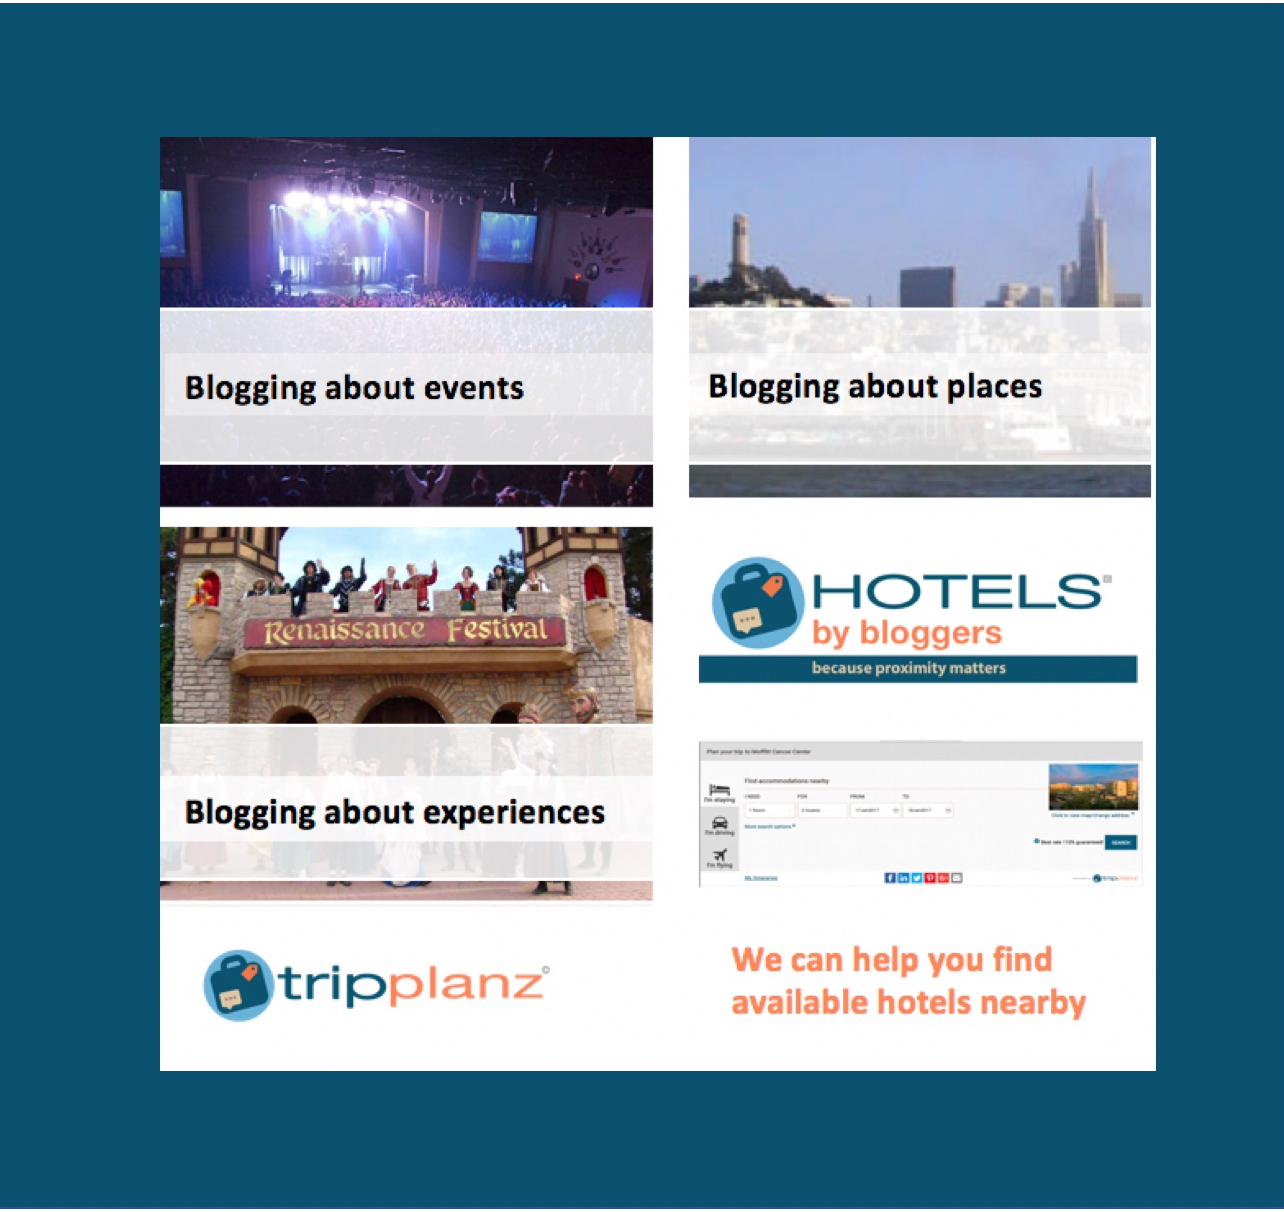 Finding hotels for bloggers